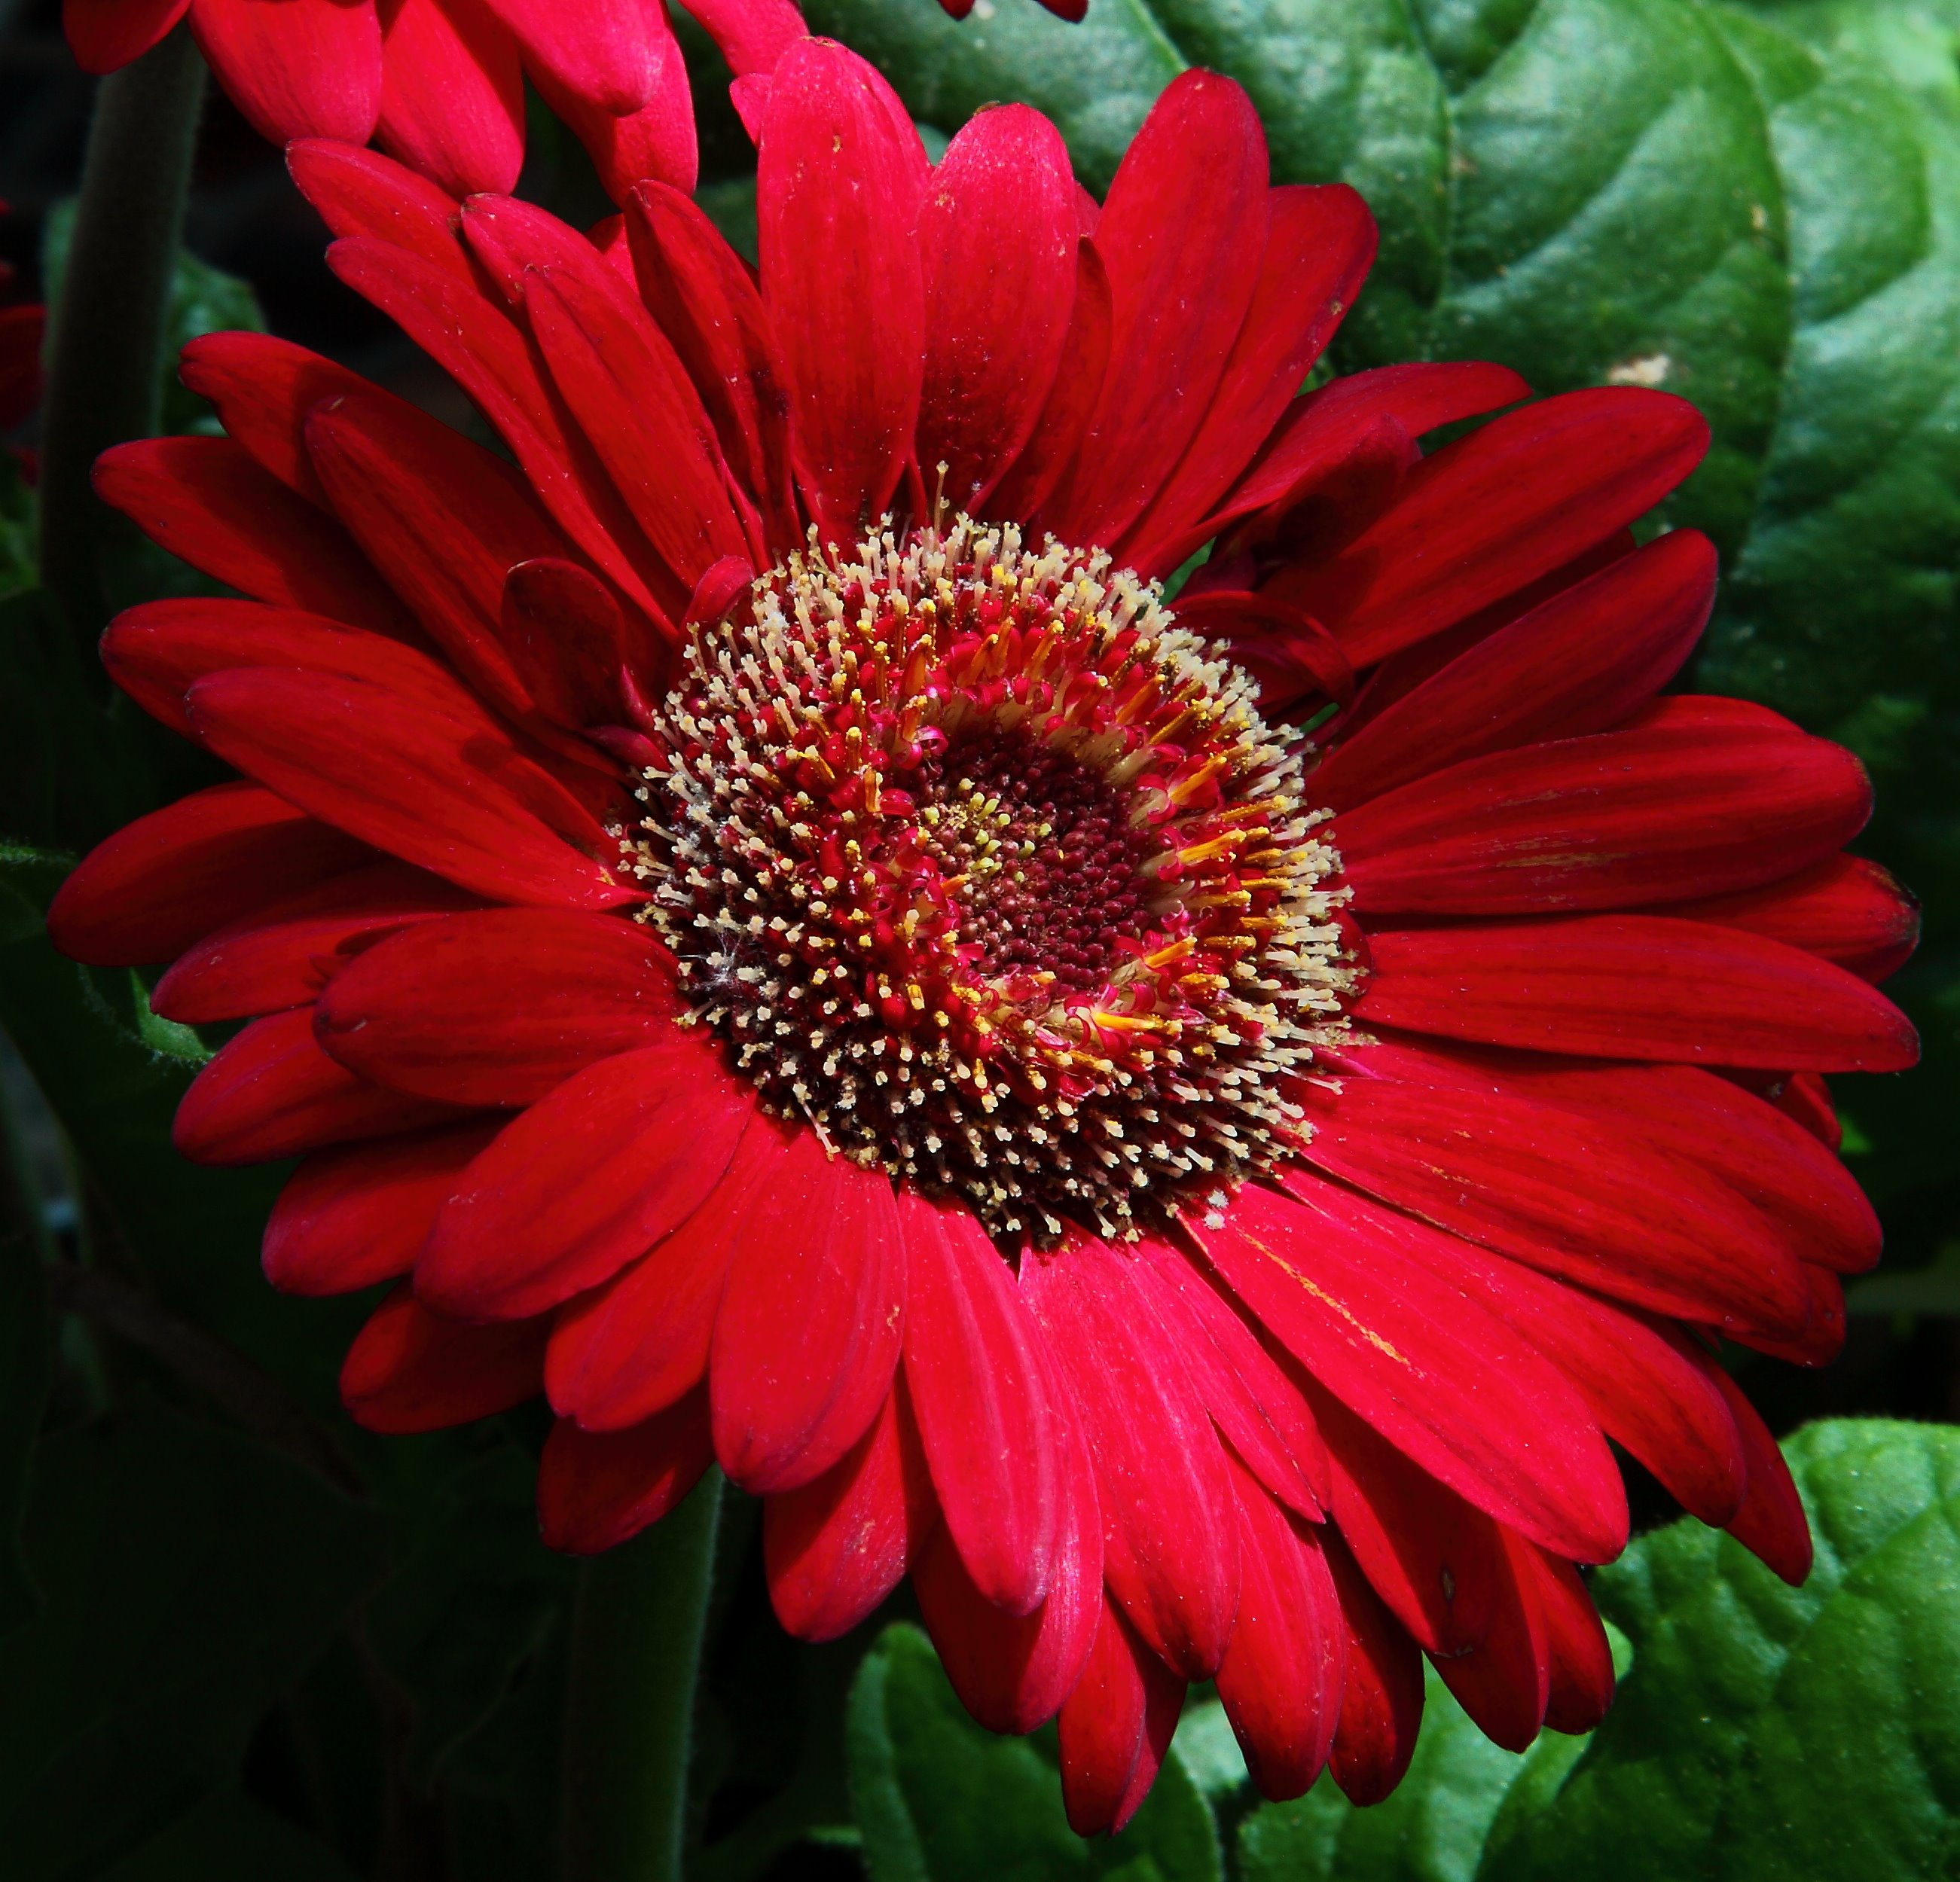 File:Large-red-daisy - Virginia - ForestWander.jpg - Wikimedia Commons